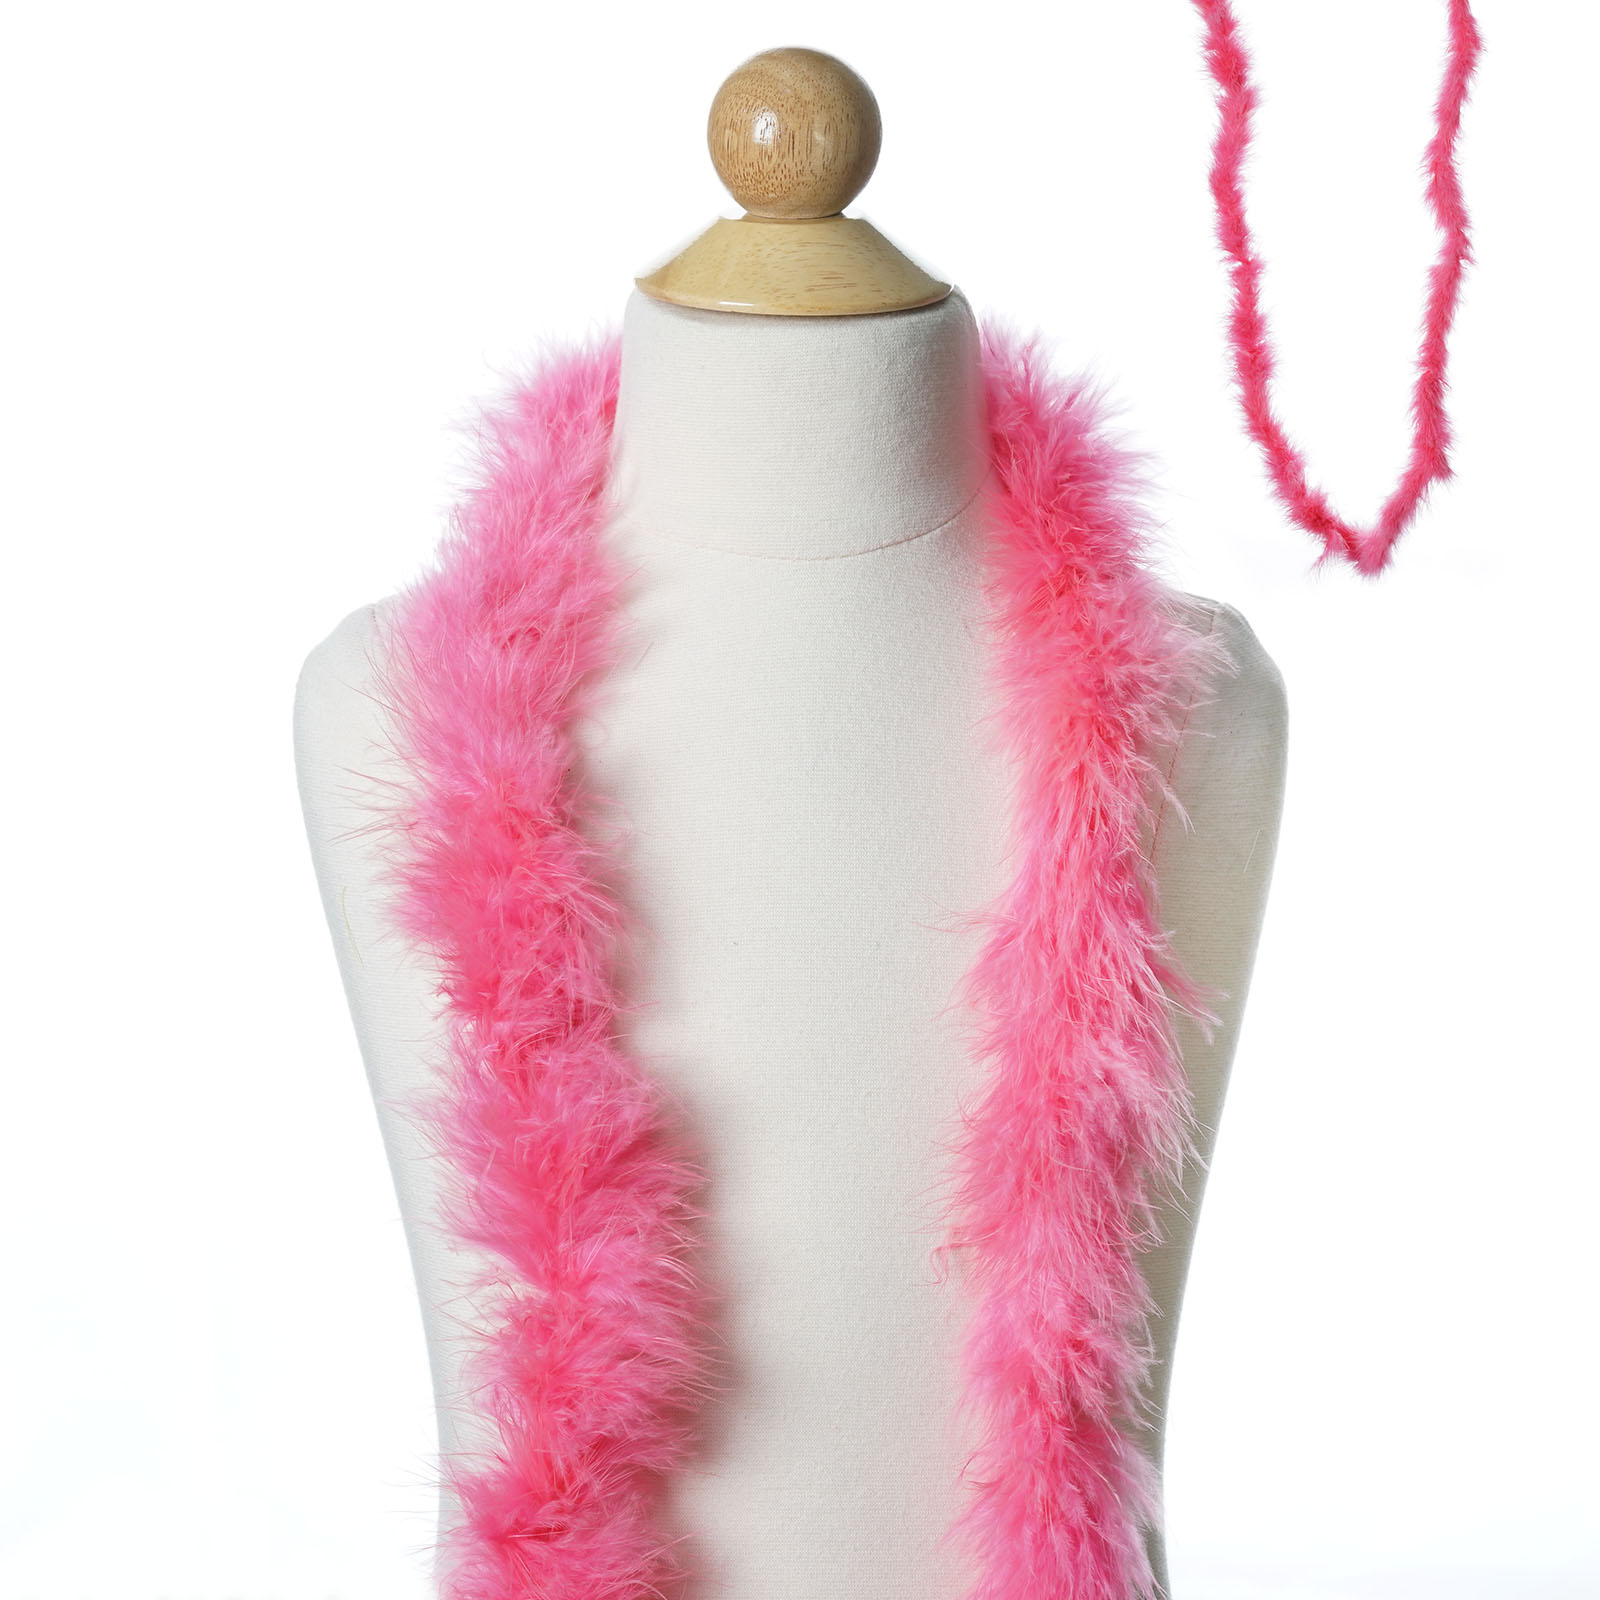 "DARK FUCHSIA 2 Yards; Dress//Bridal//Art//Costume 72/"" MARABOU FEATHER BOA"